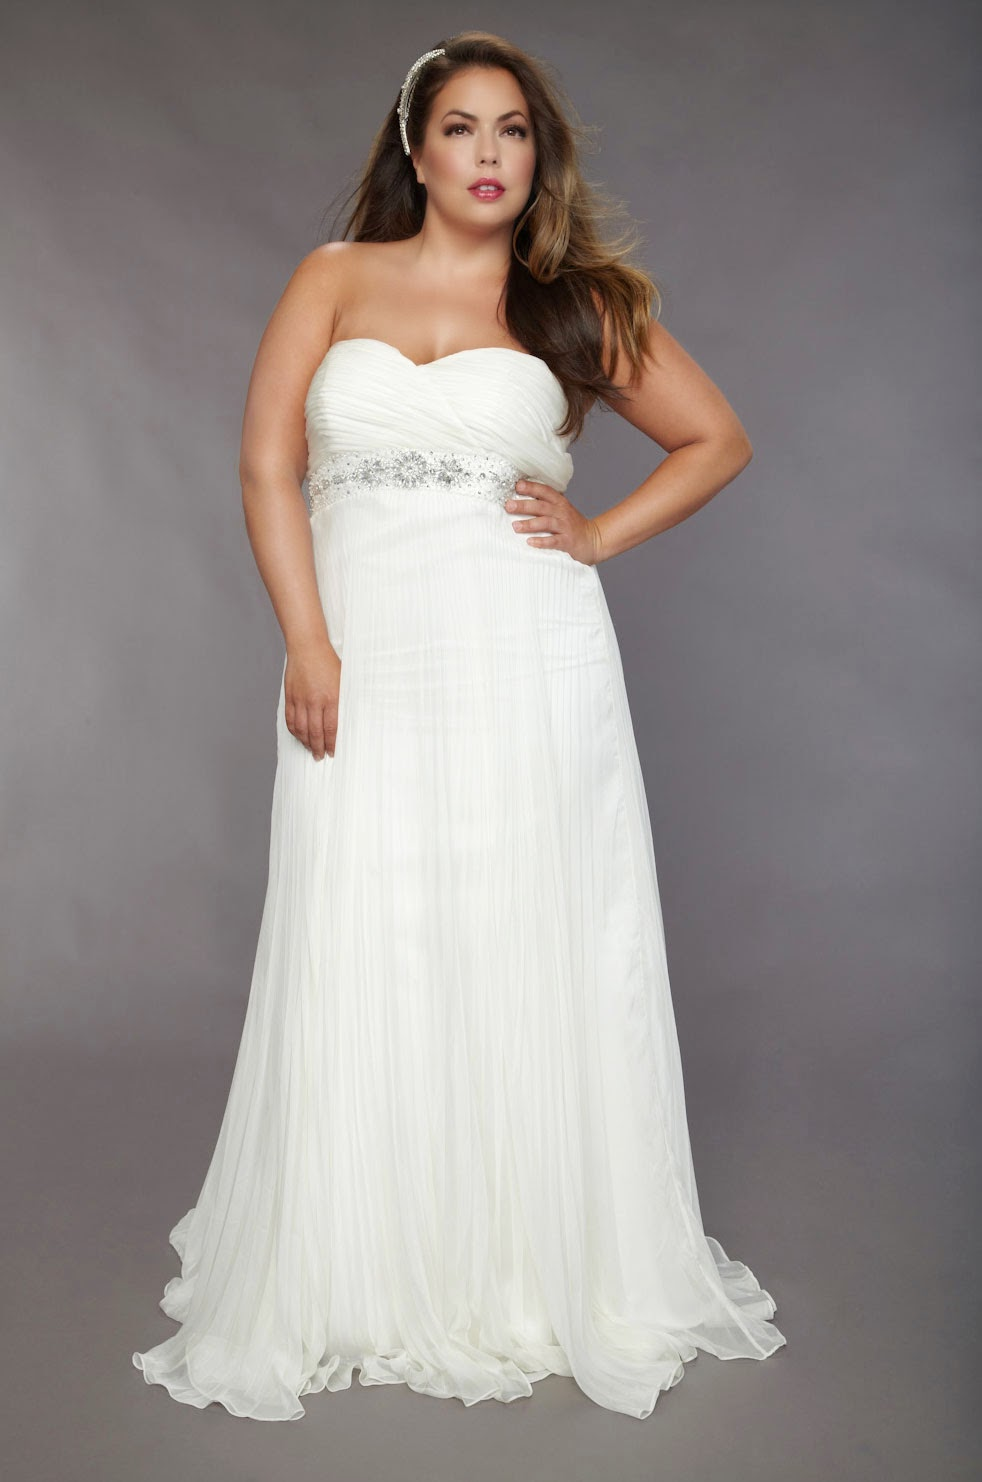 Plus Size Wedding Dresses for Older Brides Second Marriage Ideas Photos HD